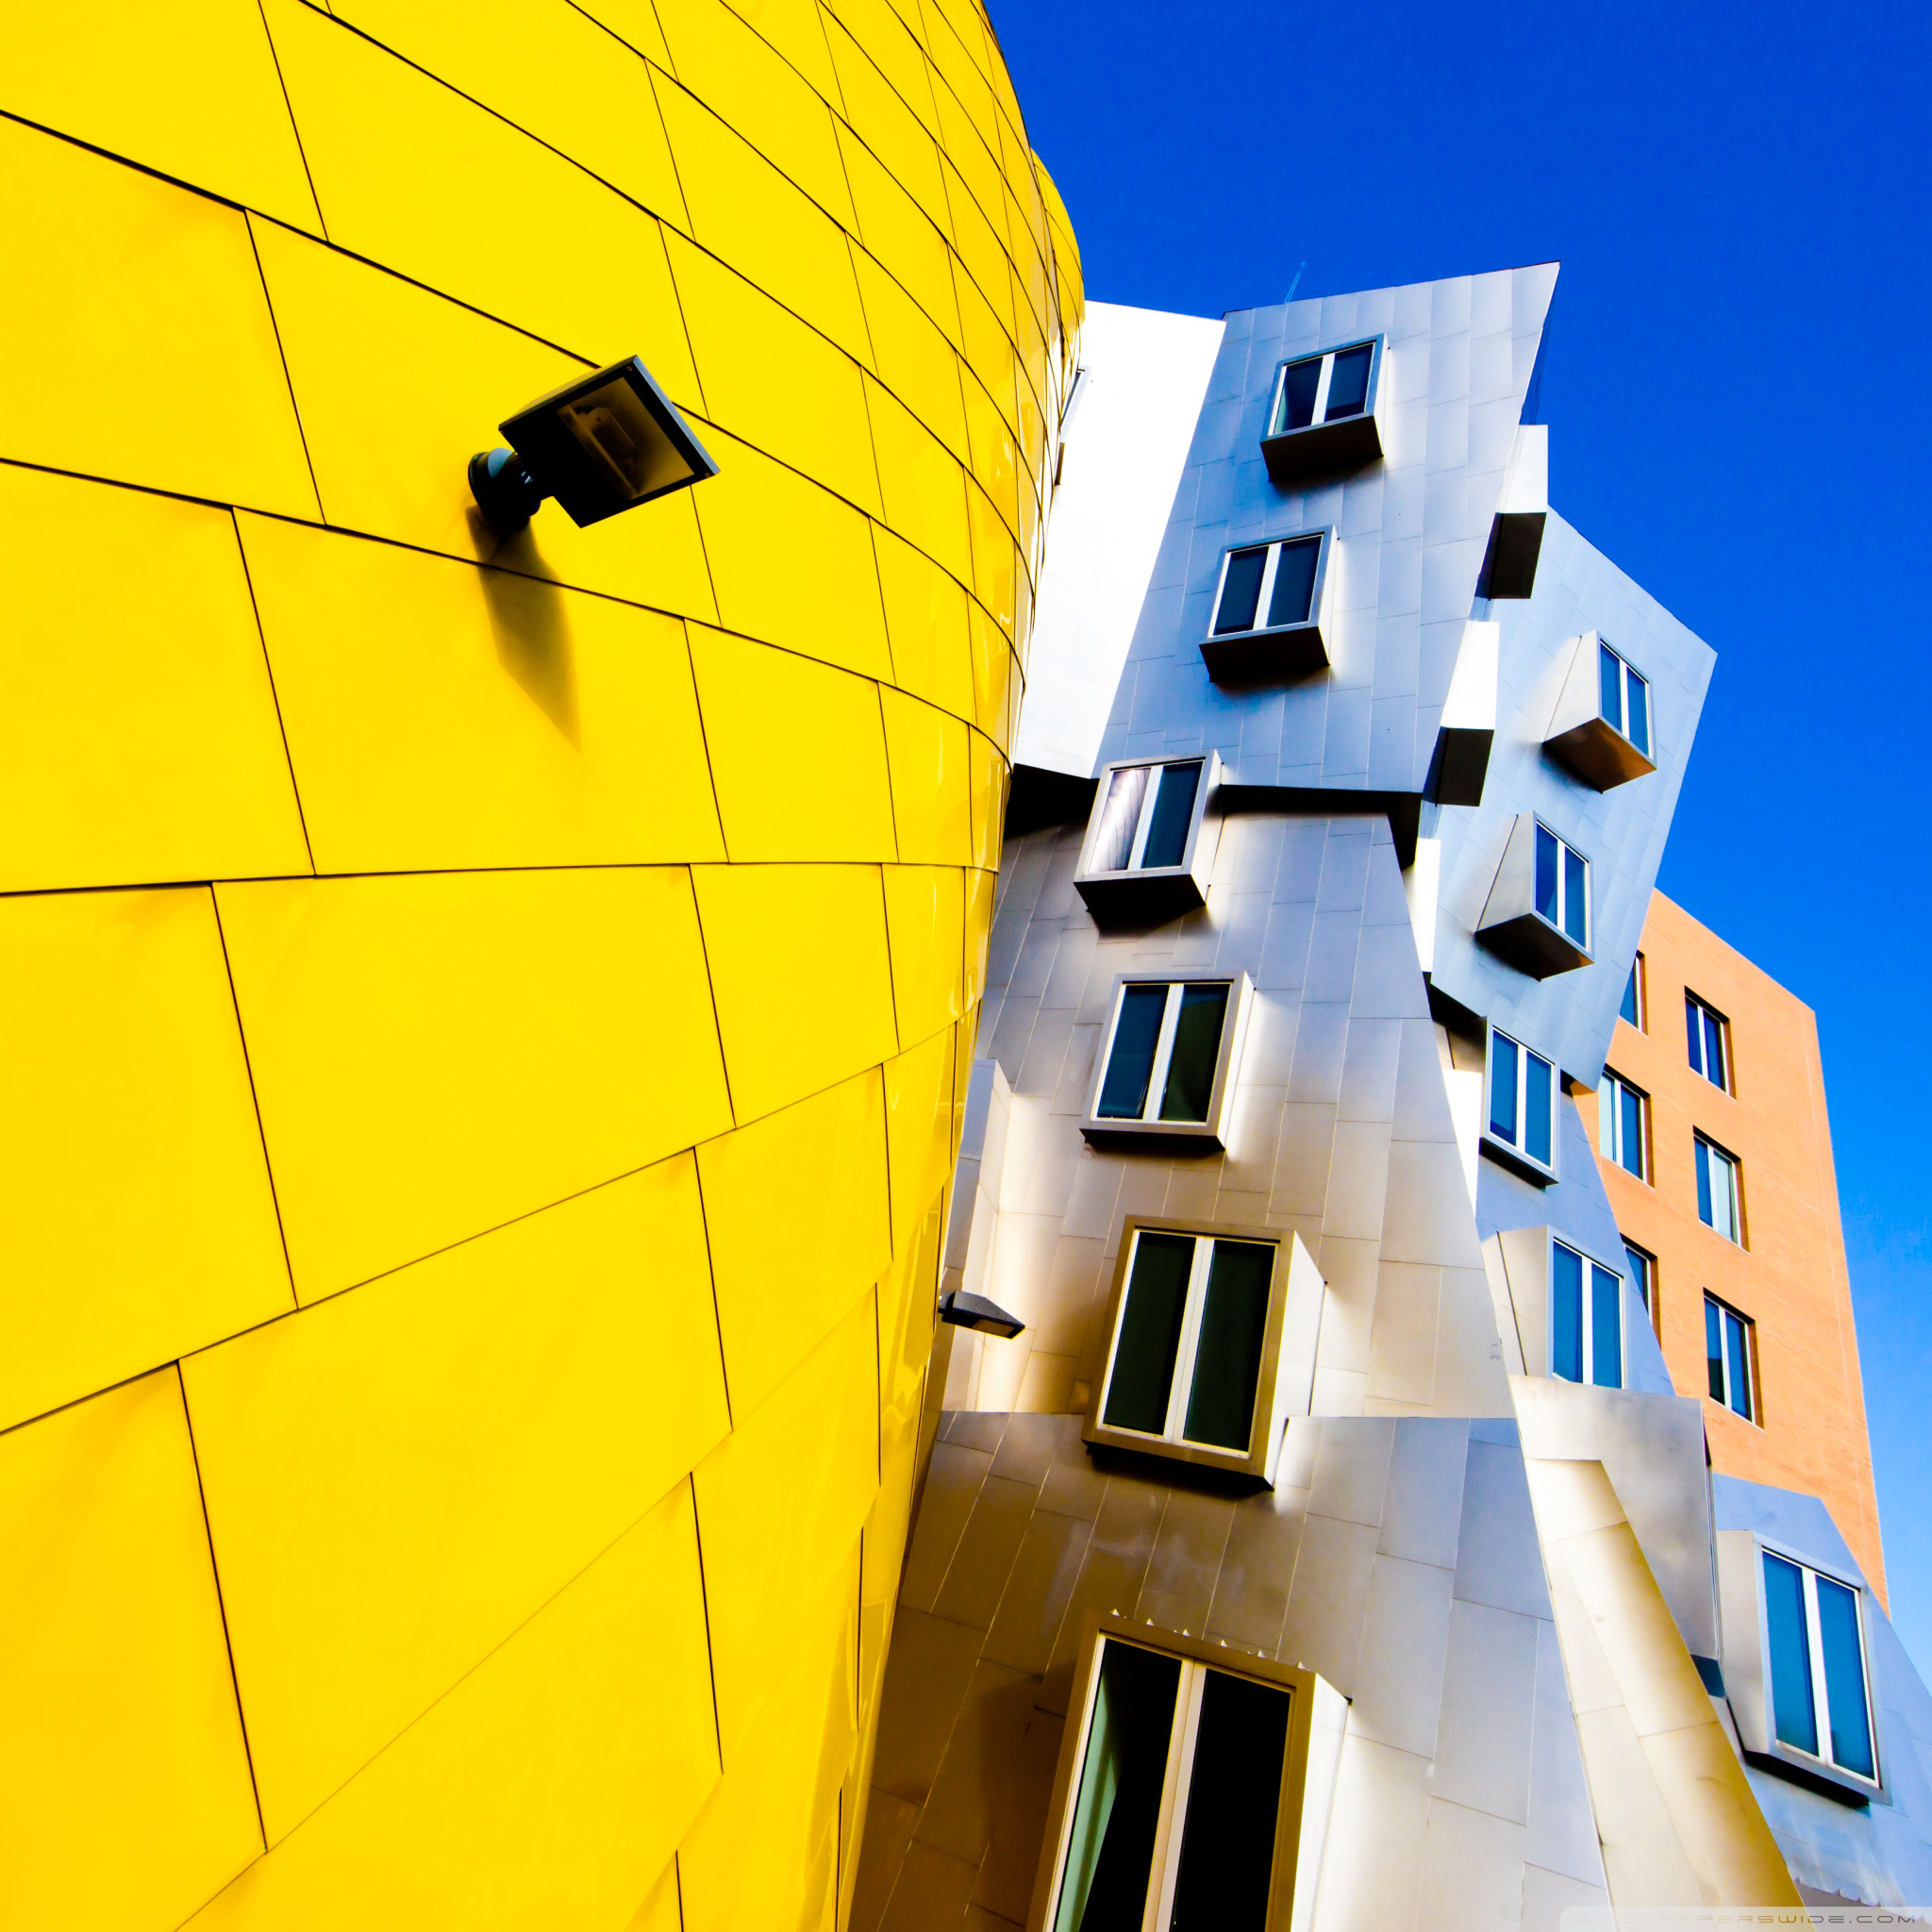 Frank Gehry Architecture 3Wallpapers iPad Retina Frank Gehry Architecture   iPad Retina